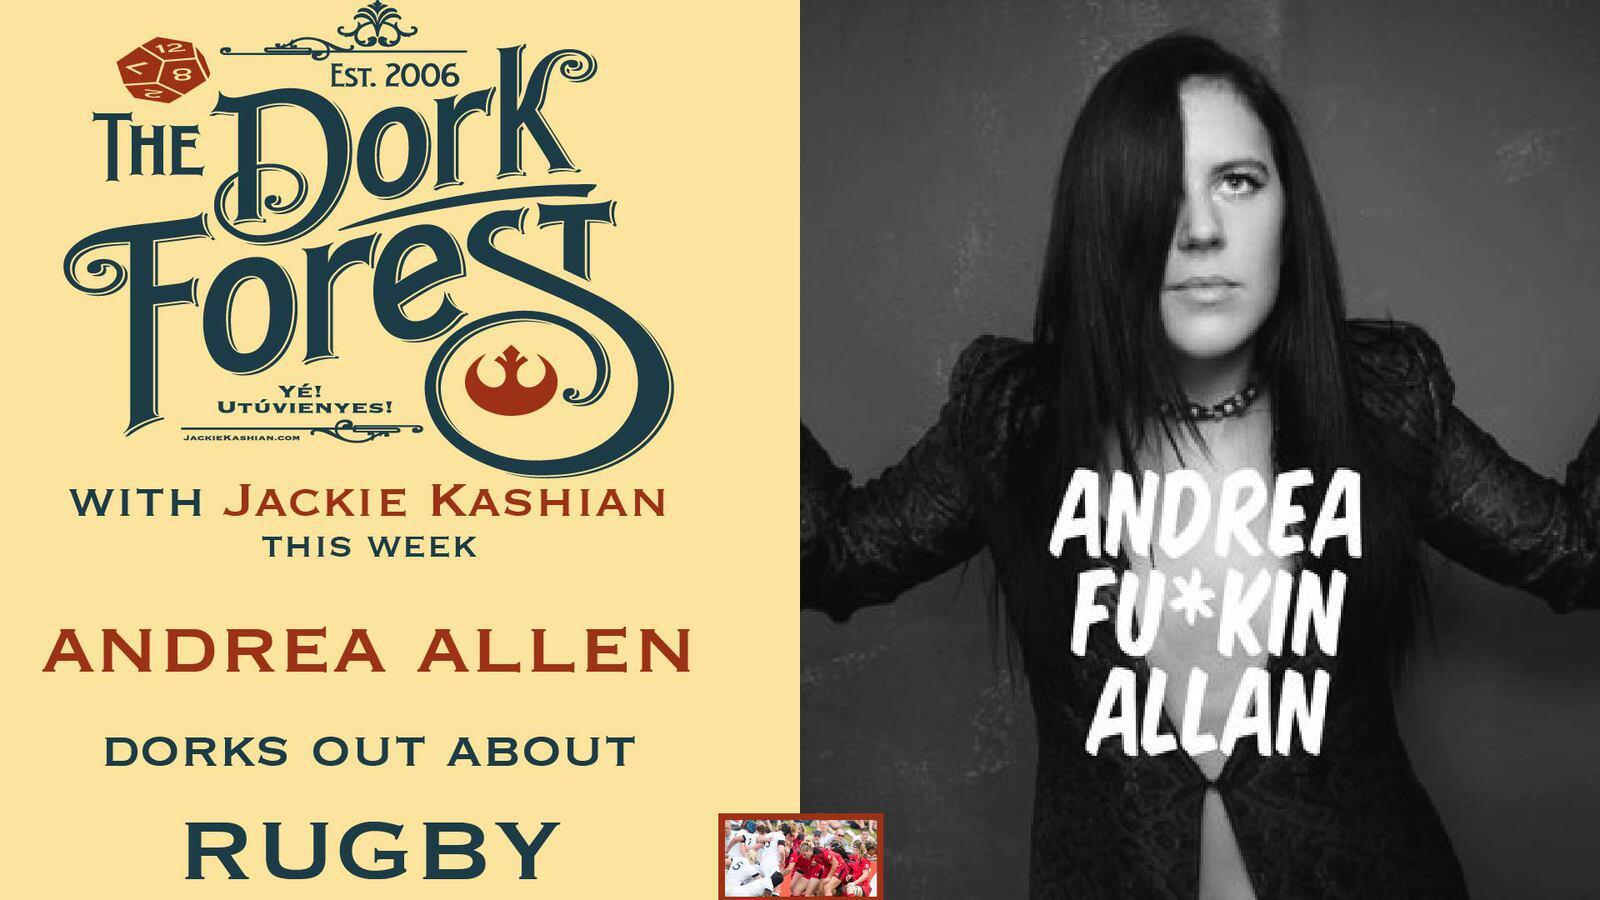 Andrea Allan the dork forest / rugby and rage w andrea allan - ep. 466